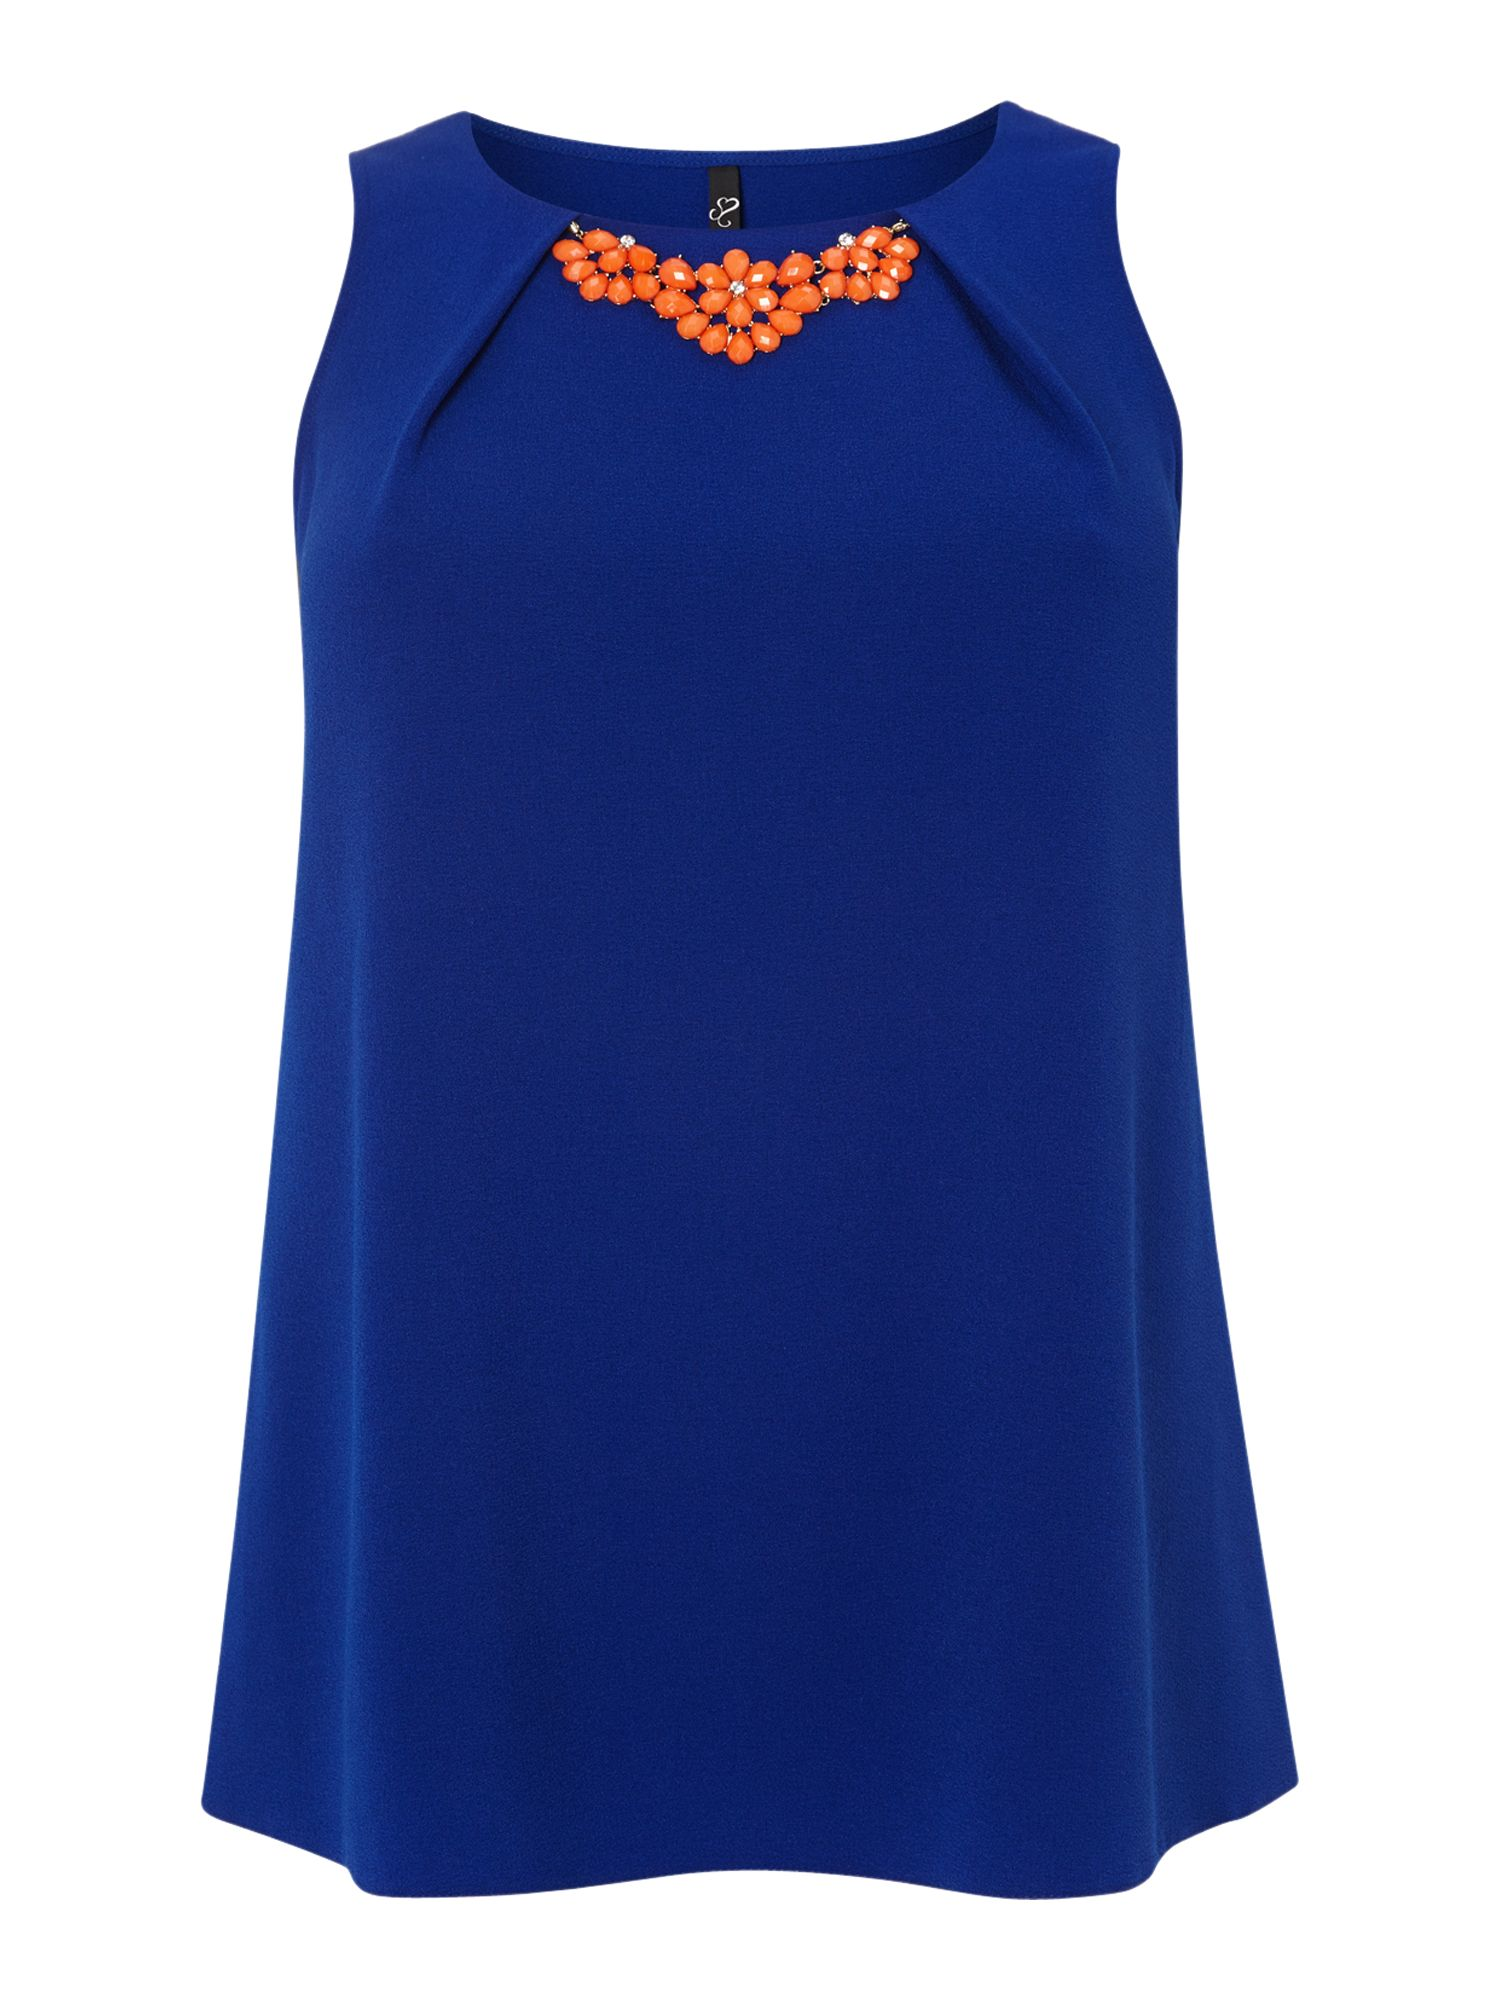 Cobalt crepe trim top